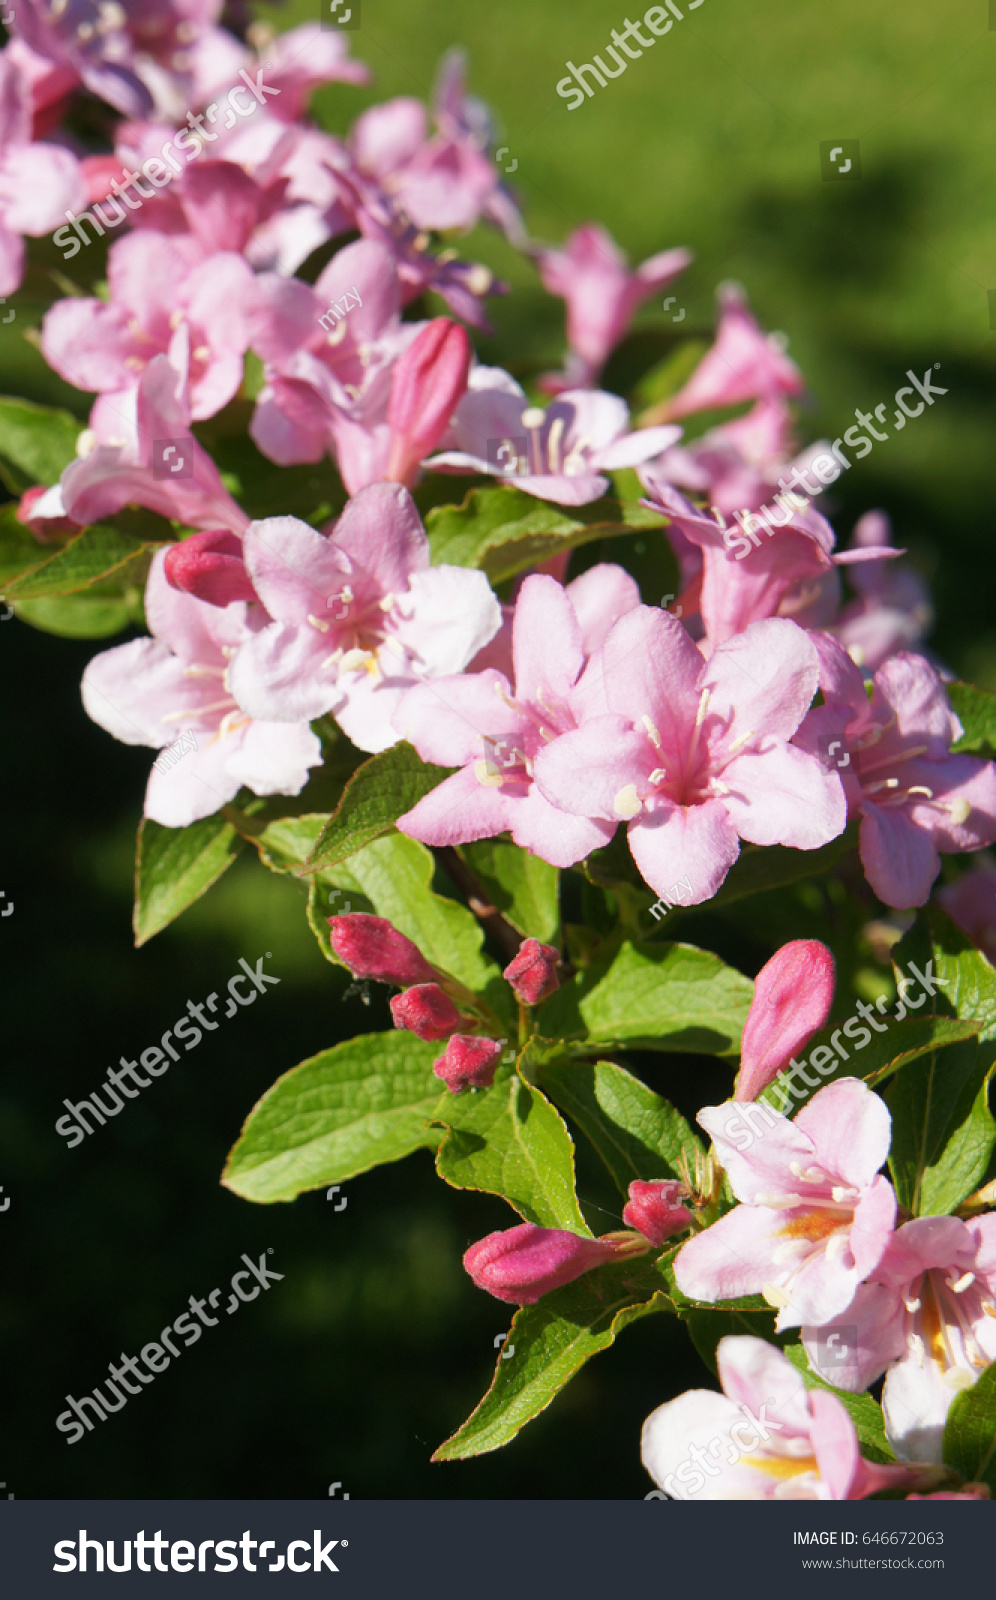 Branch Of Weigela Florida Pink Flowers With Green Background